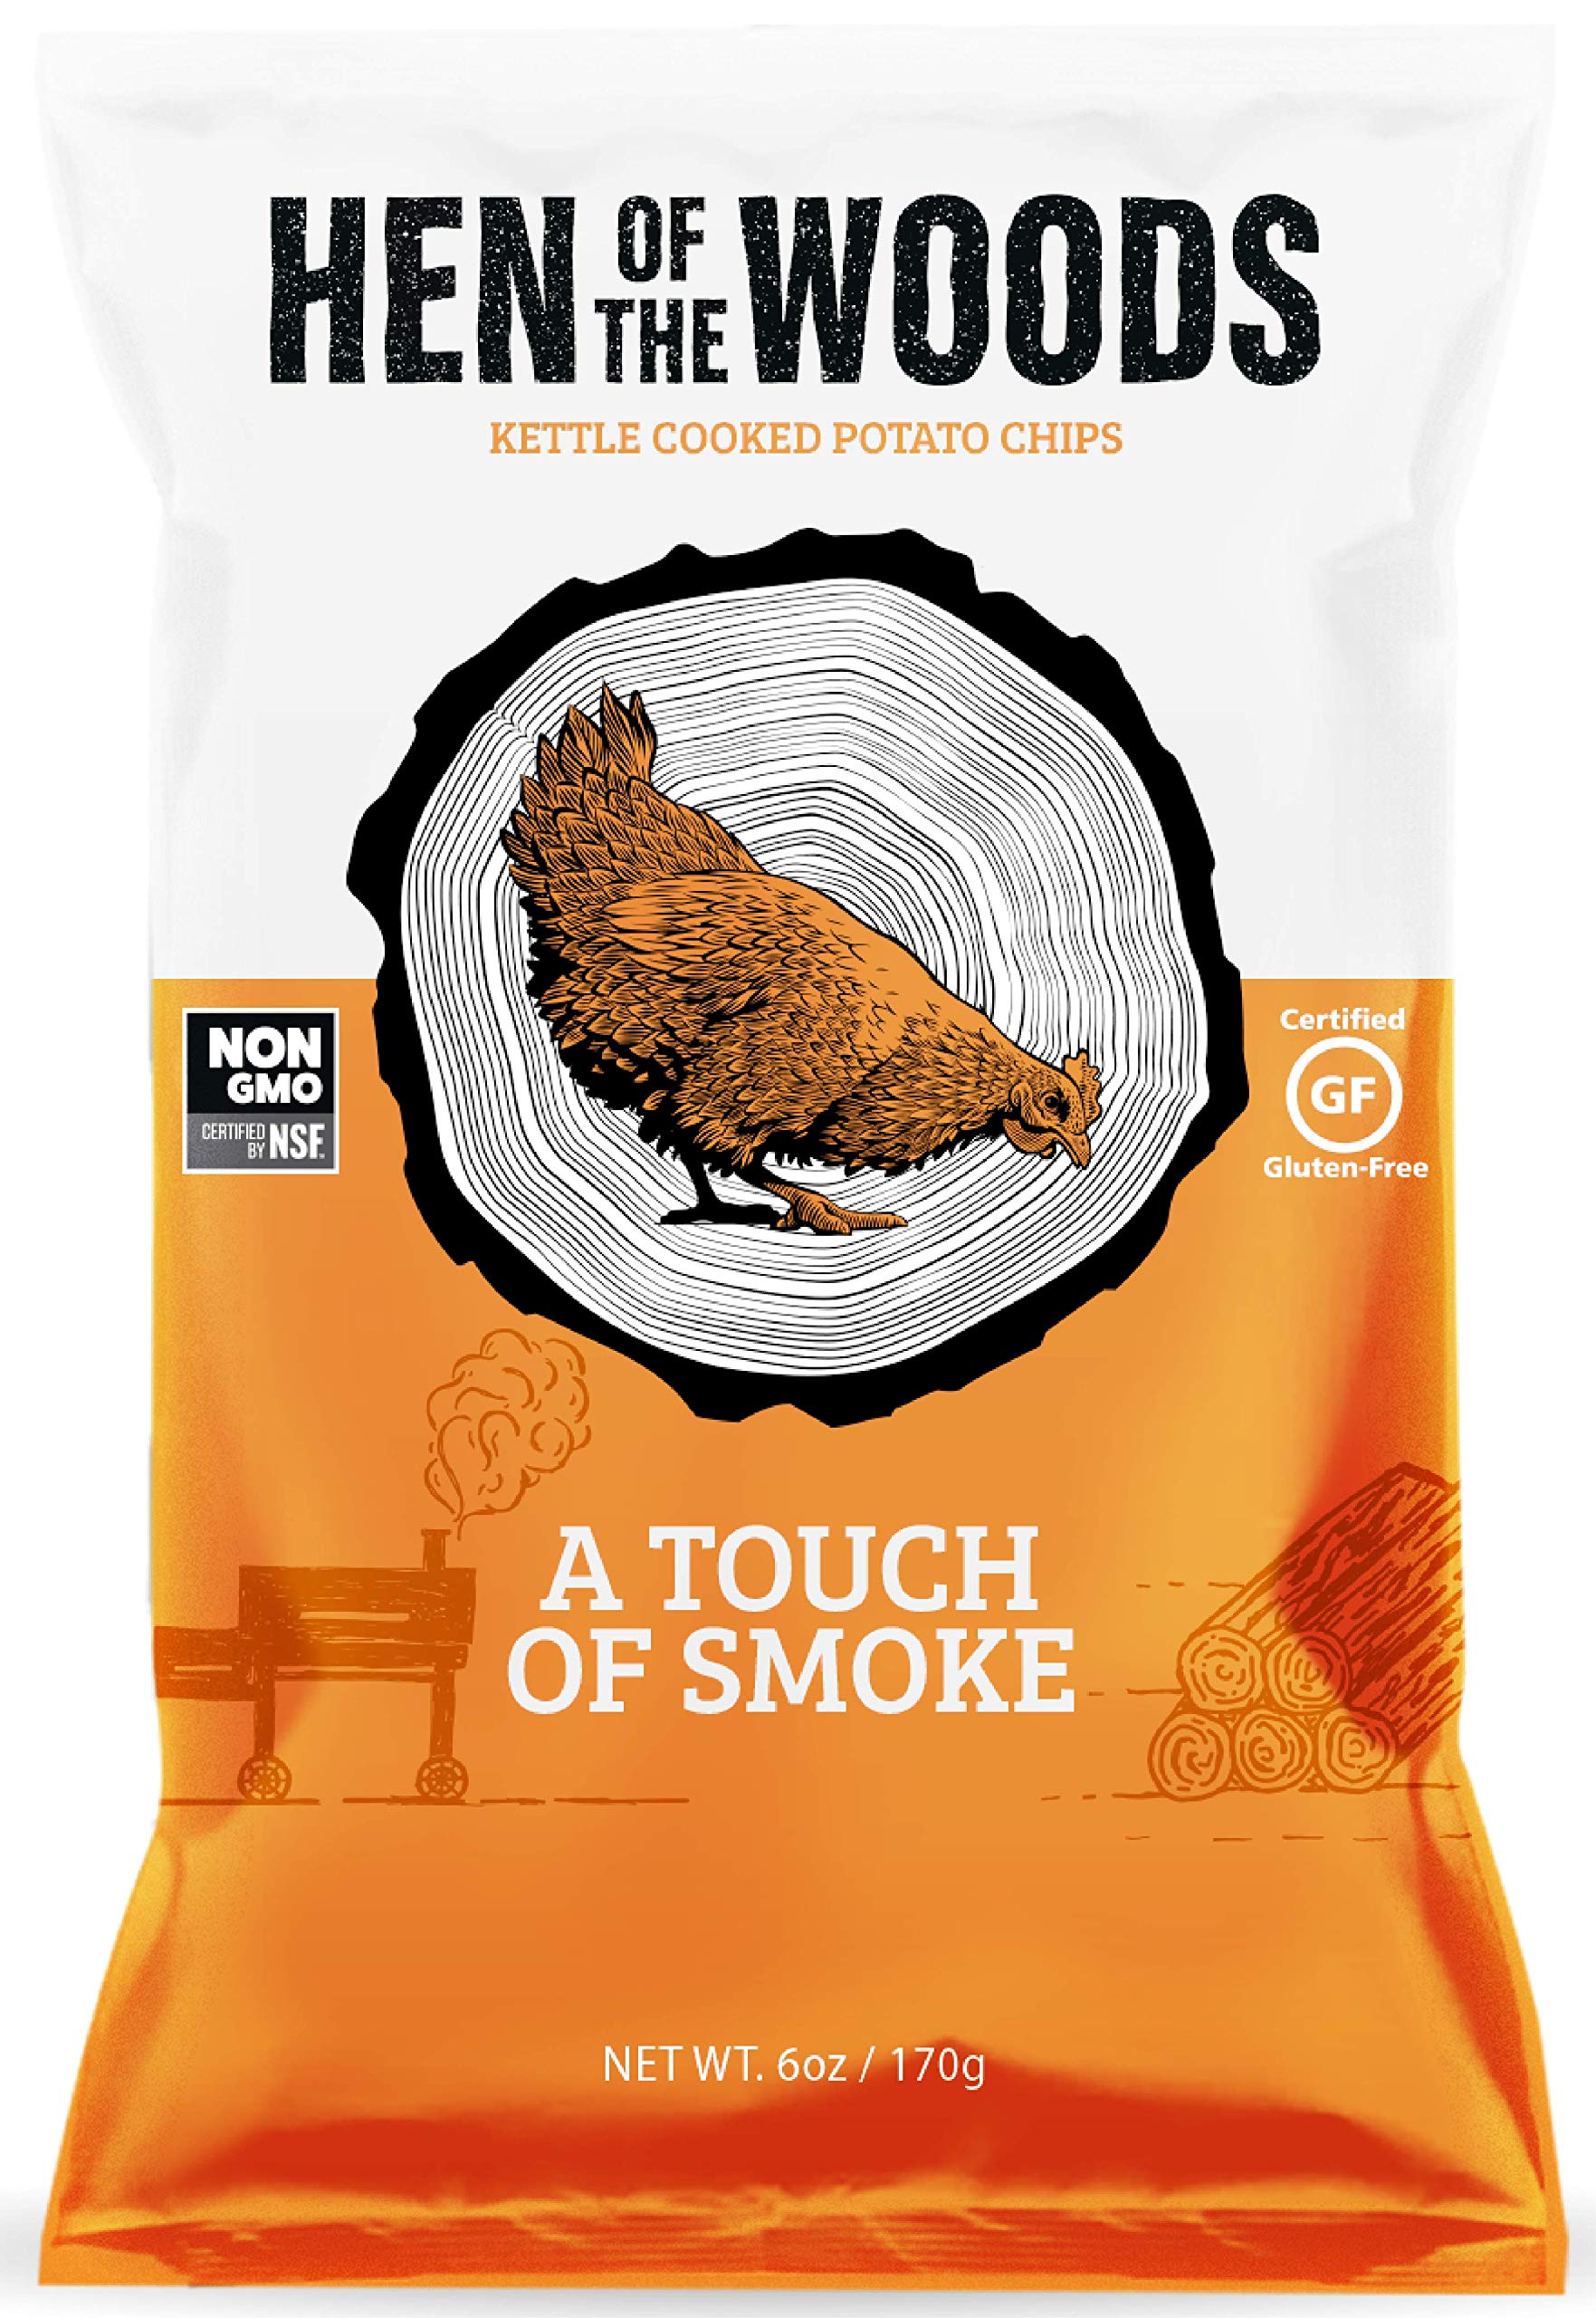 Hen of the Woods Kettle Chips | A Touch of Smoke~ 6oz (8 Count) | Healthy Snacks, Potato Chips, Non GMO, Gluten Free, Grain Free by Hen of the Woods